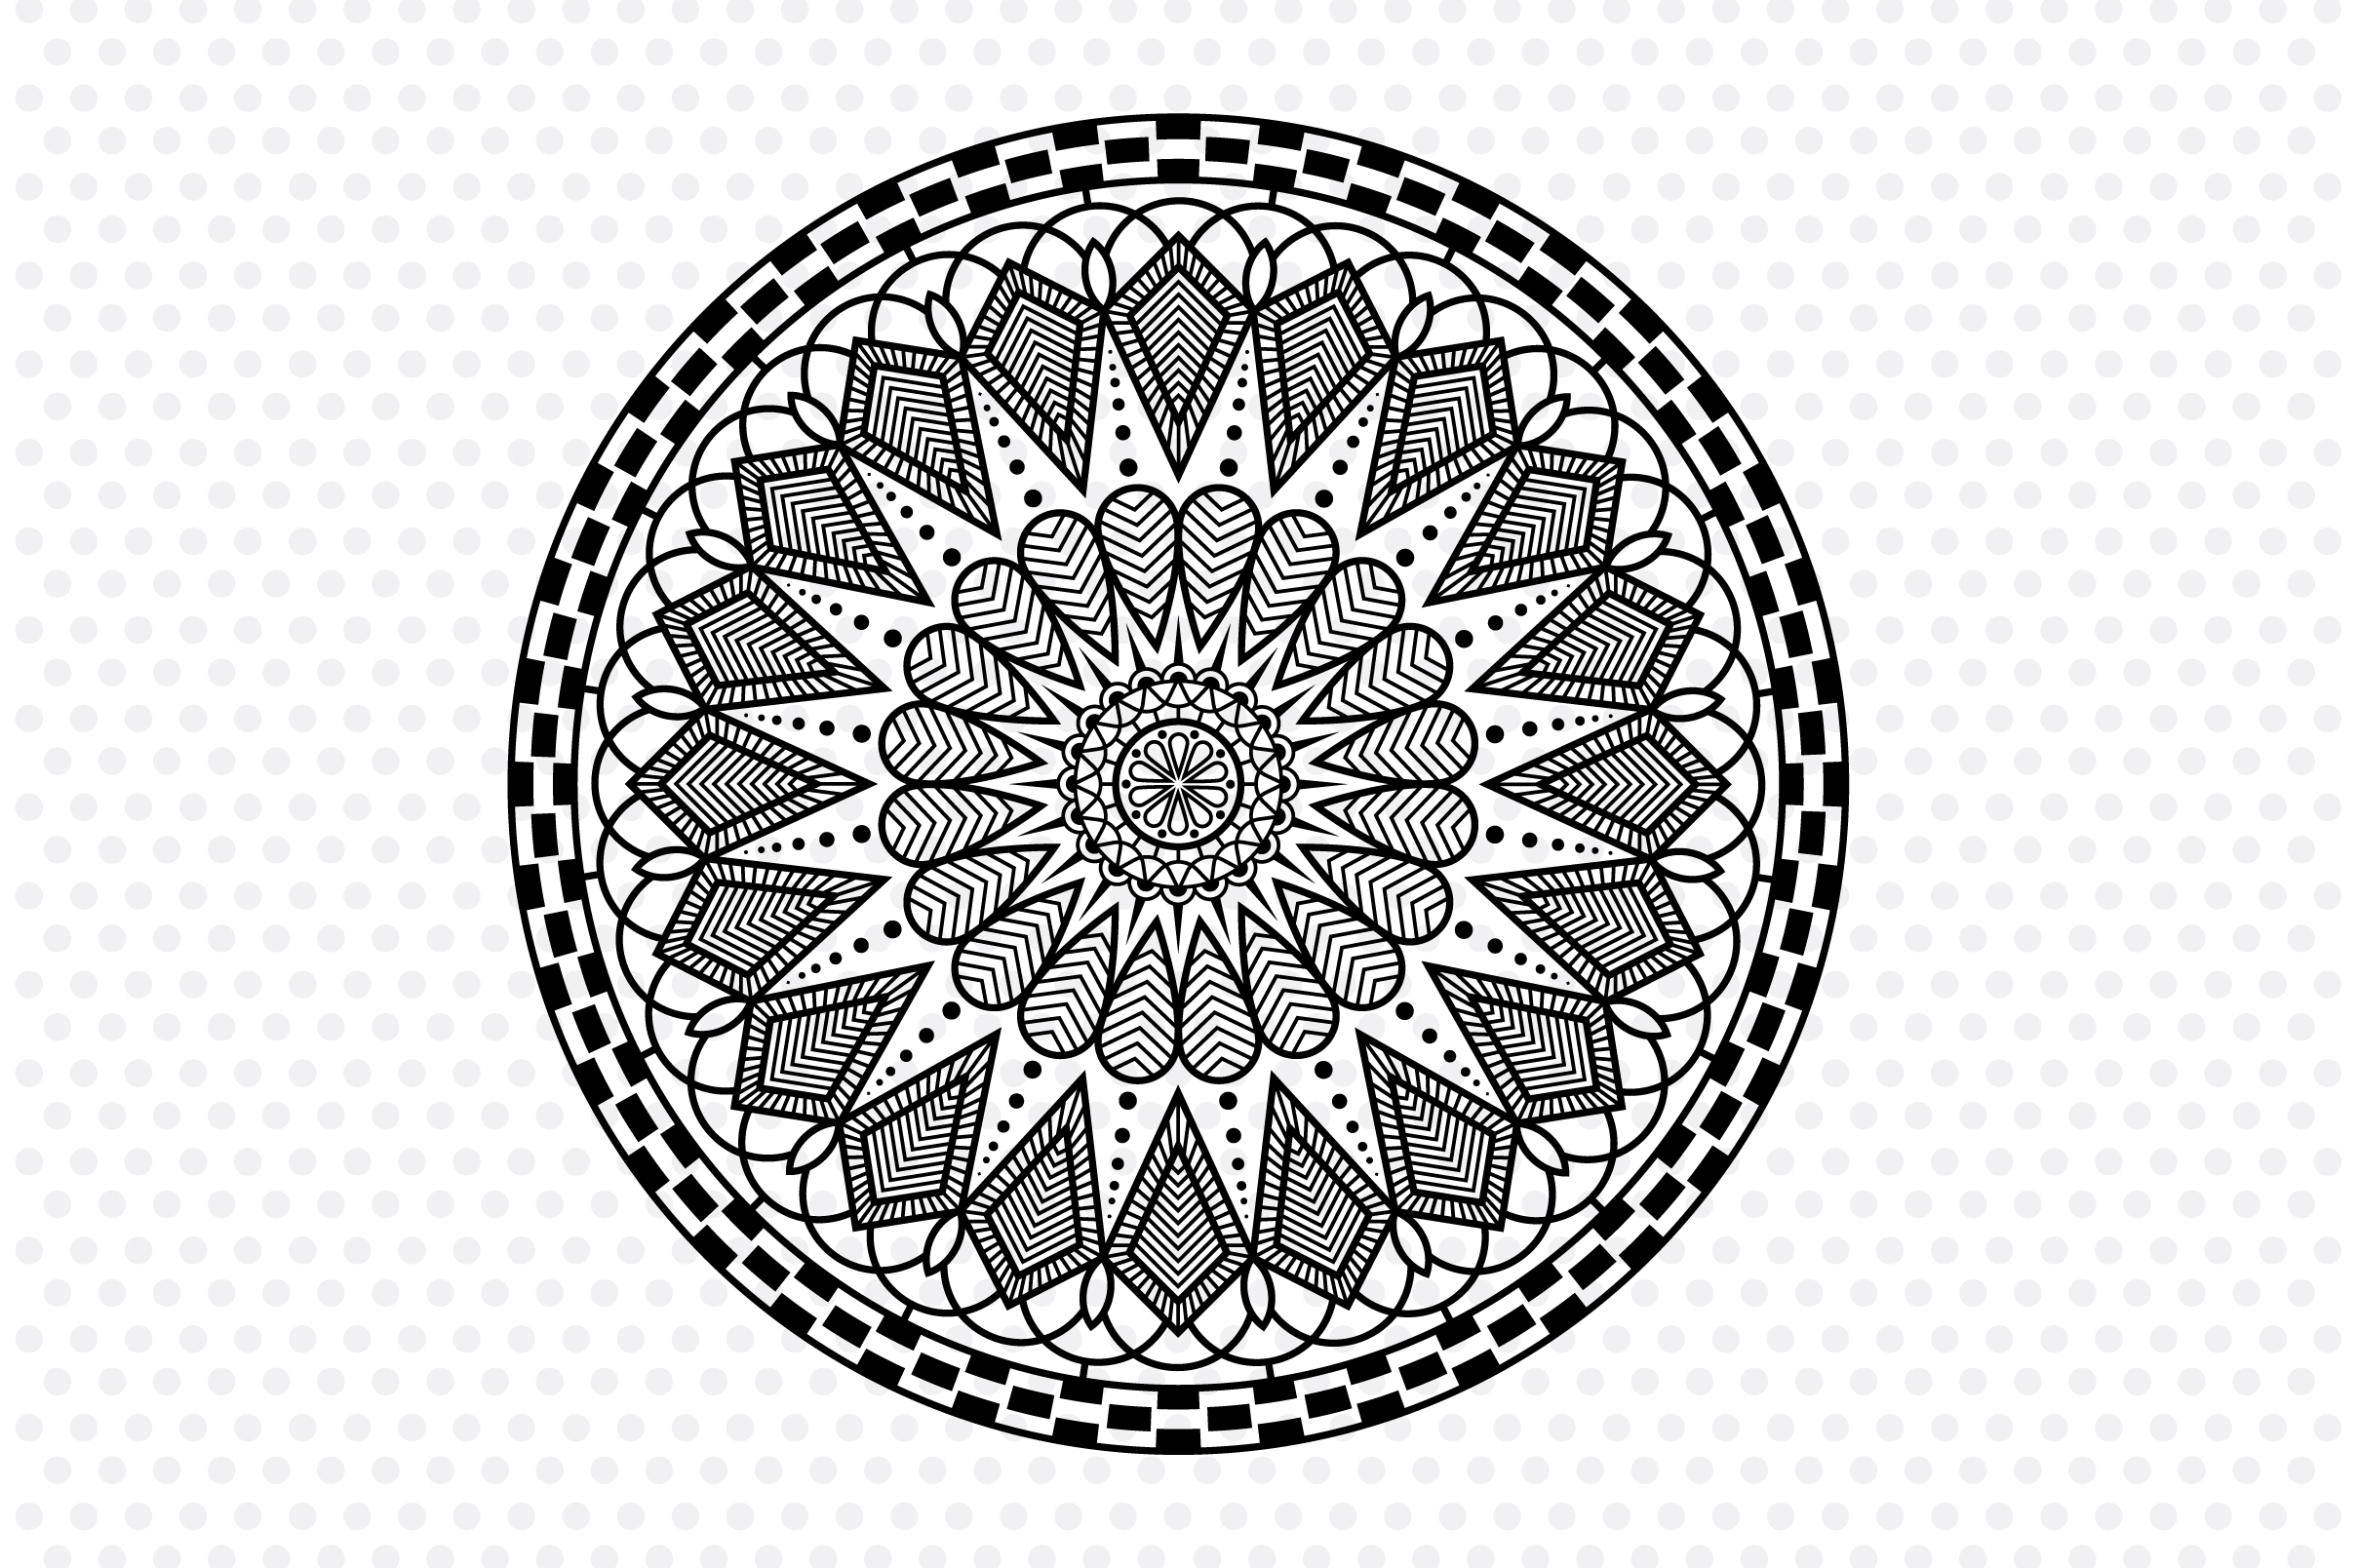 Download Free Symmetrical Mandala Graphic By Izacuite Creative Fabrica for Cricut Explore, Silhouette and other cutting machines.